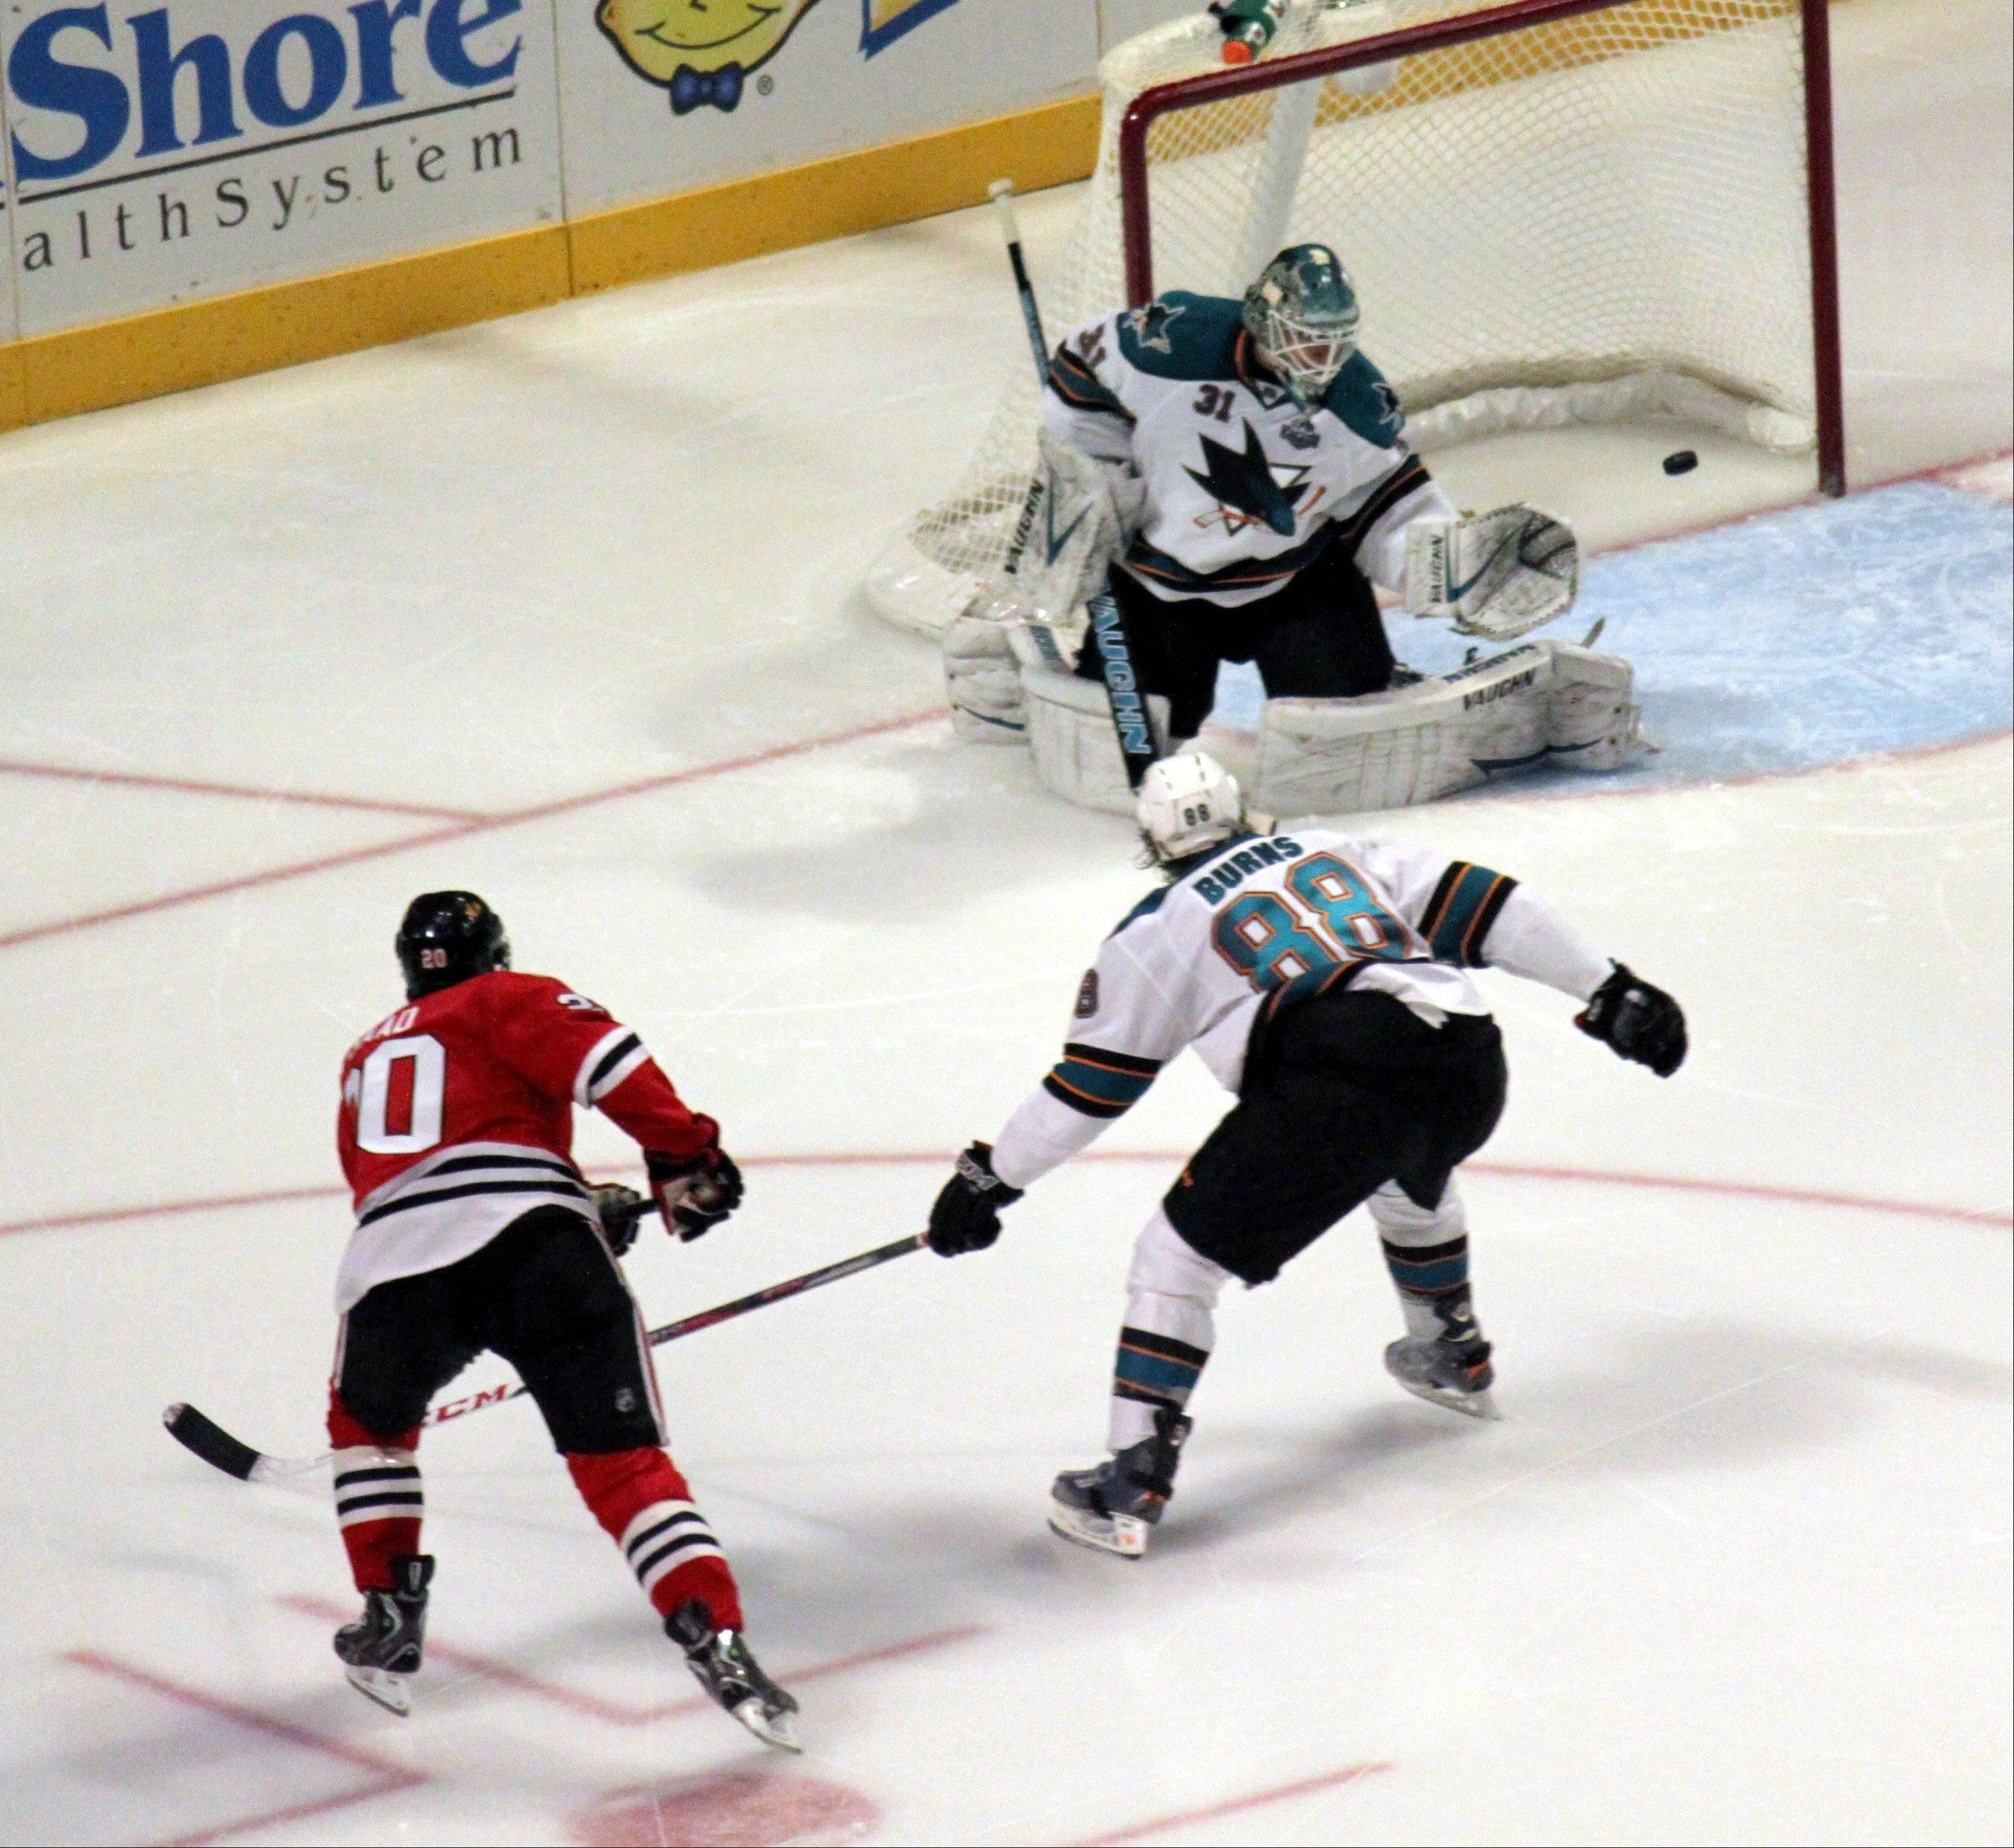 Brandon Saad scores the game winning goal on February 22nd during the Chicago Blackhawks vs. San Jose Sharks game at the United Center. The Hawks have set the record for most games to start a season without a loss in regulation time.